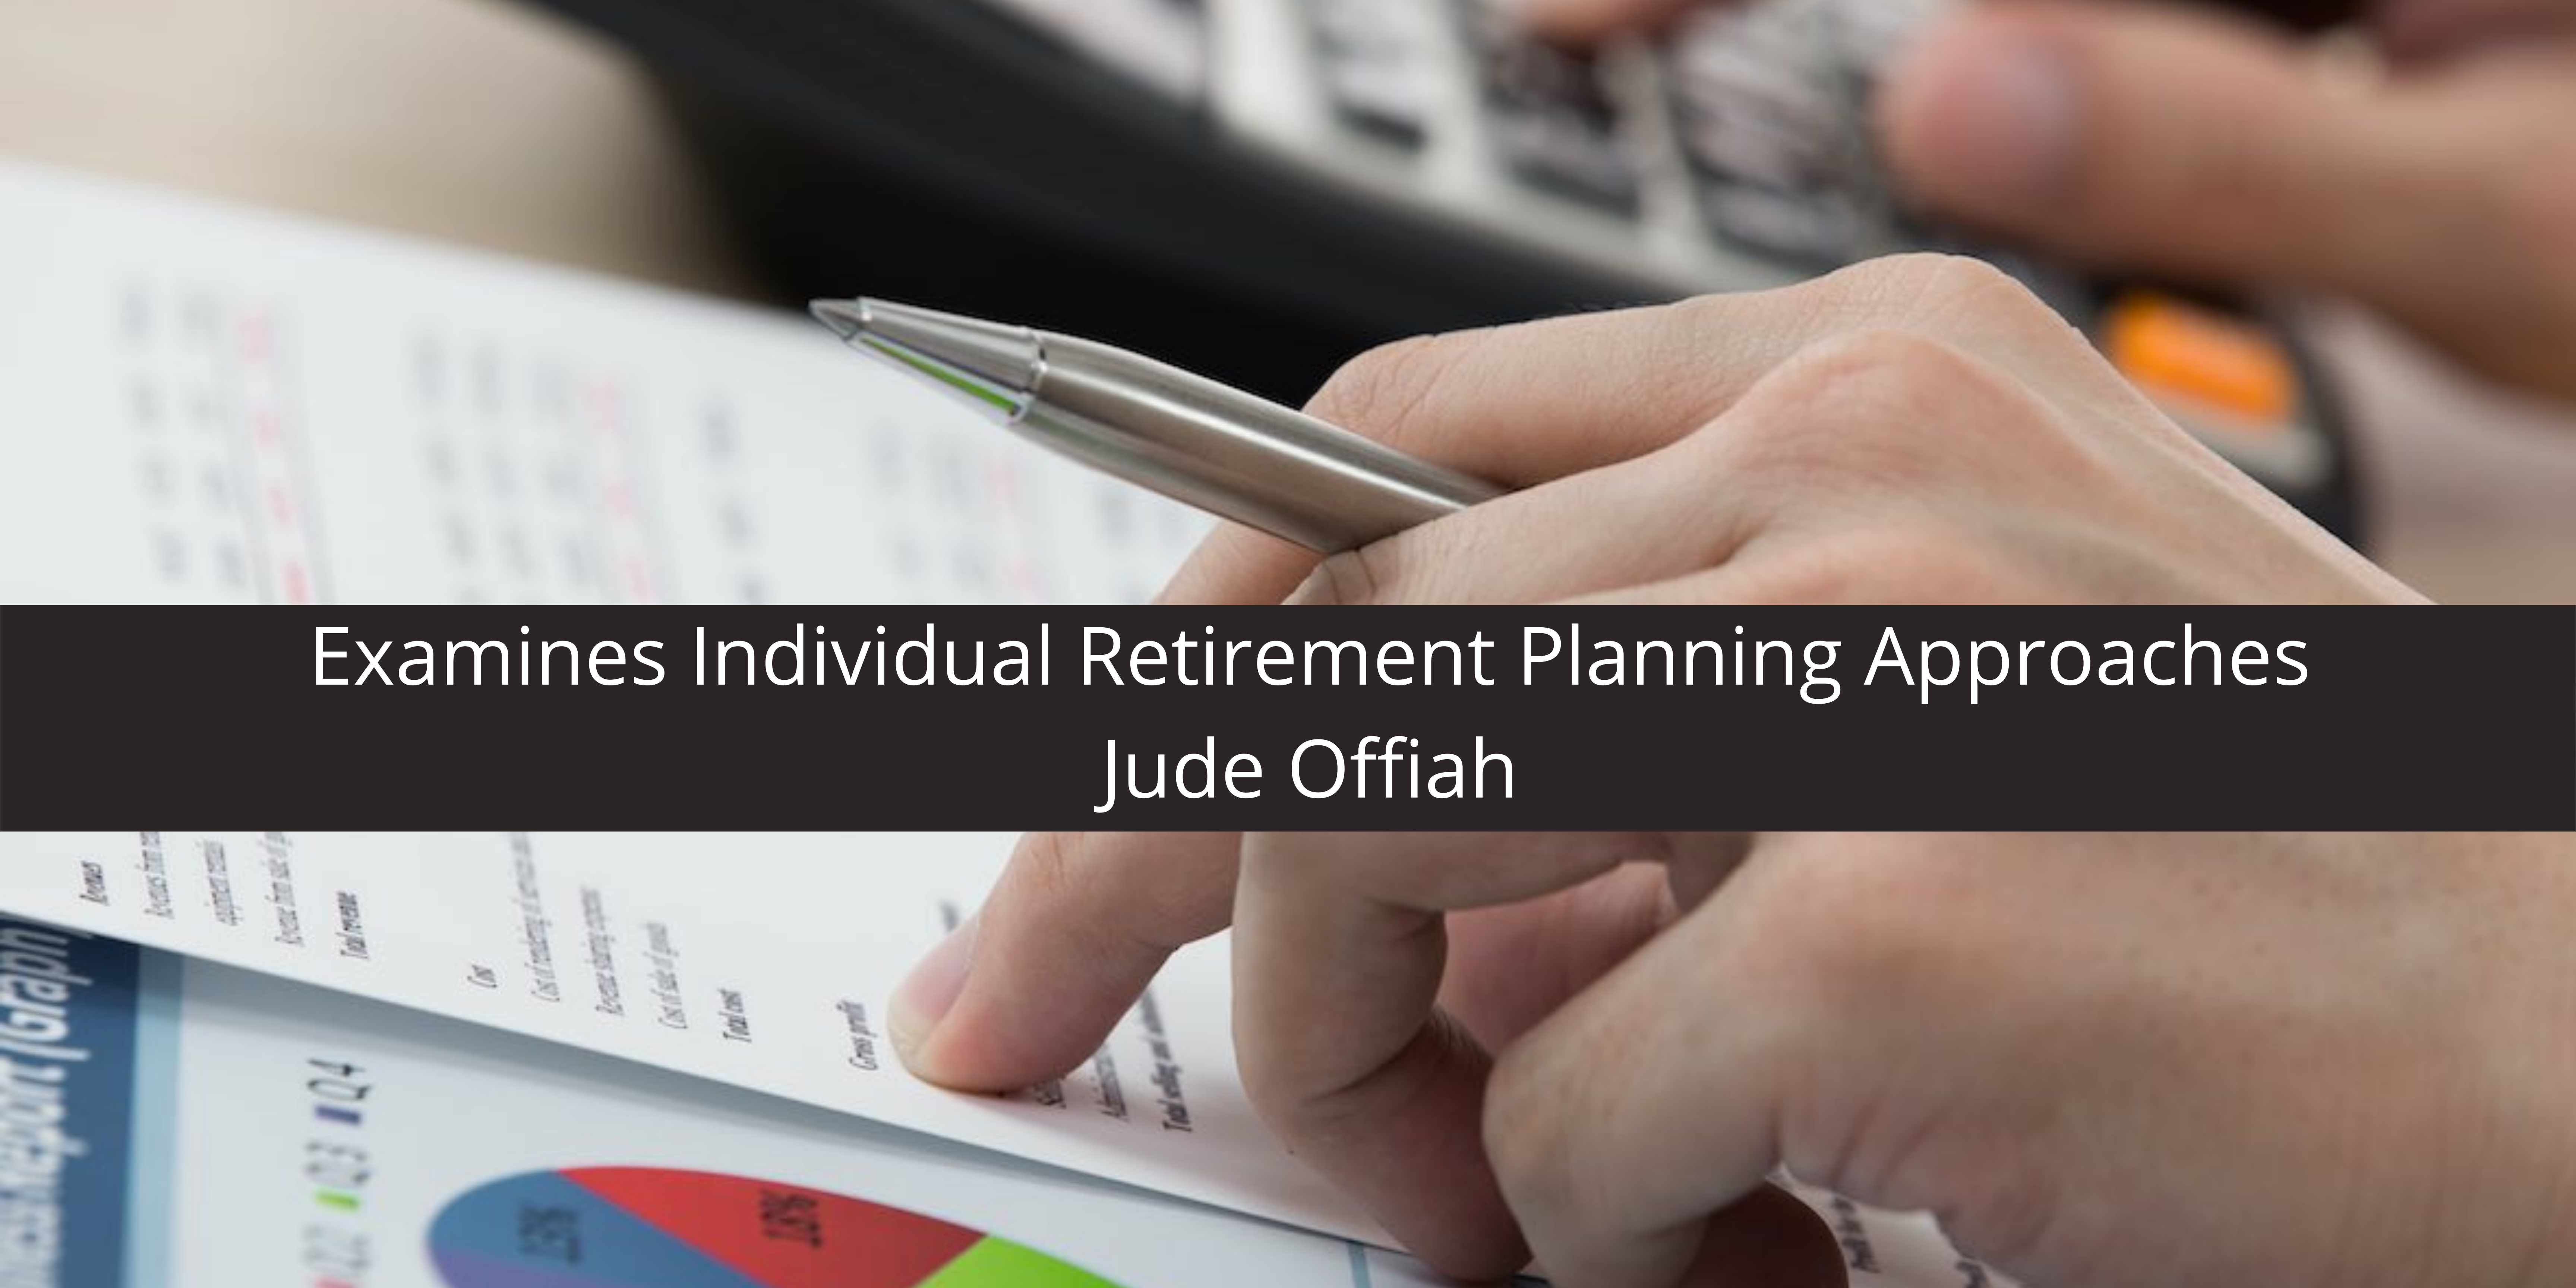 Jude Offiah Examines Individual Retirement Planning Approaches